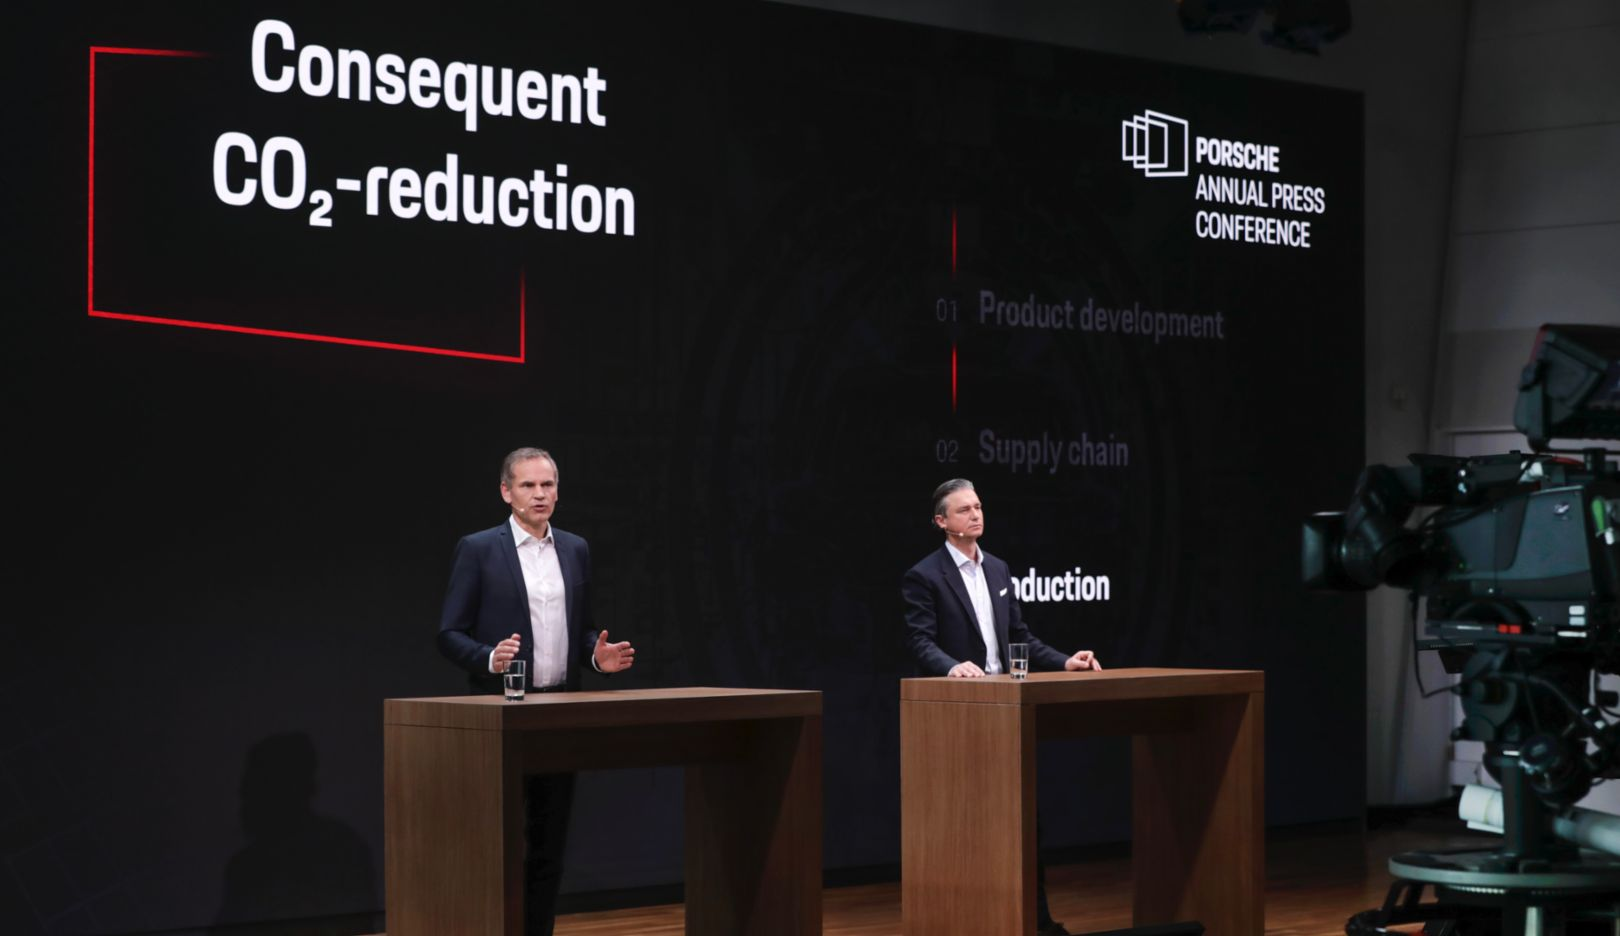 Oliver Blume, Chairman of the Executive Board of Dr. Ing. h.c. F. Porsche AG, Lutz Meschke, Deputy Chairman of the Executive Board and Member of the Executive Board responsible for Finance and IT of Dr. Ing. h.c. F. Porsche AG, l-r, Annual Press Conference, 2021, Porsche AG